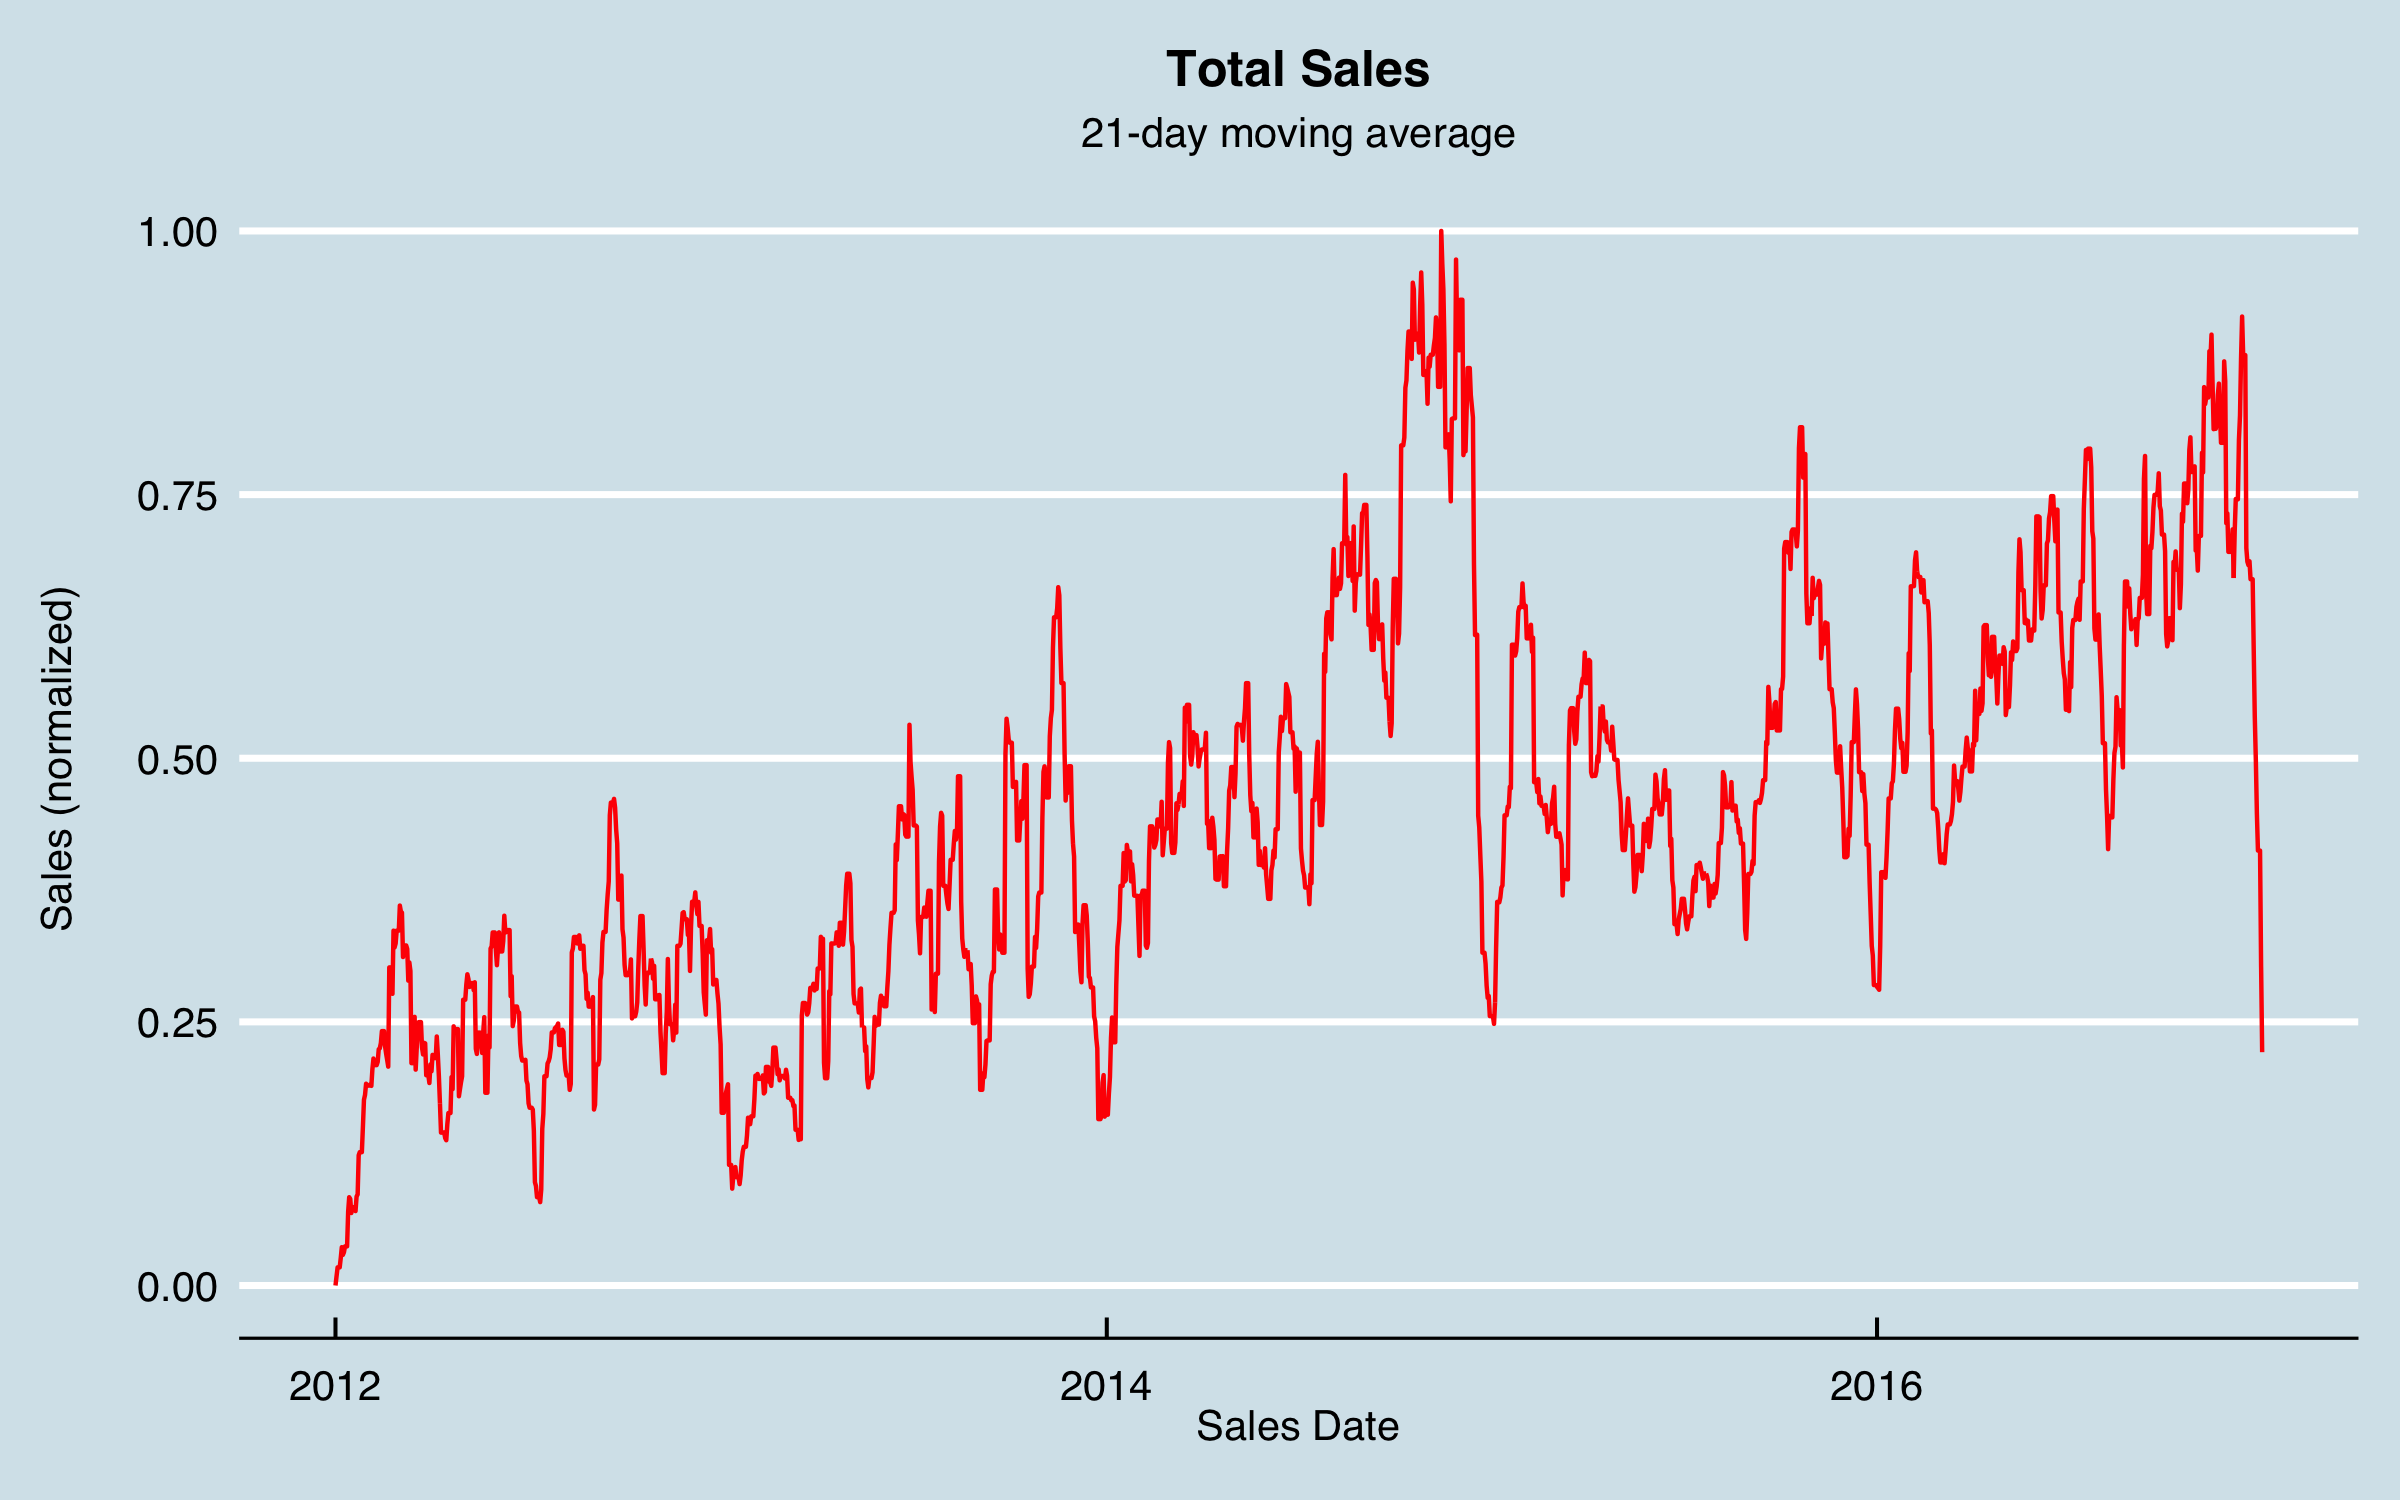 plot of chunk Smoothed Sales